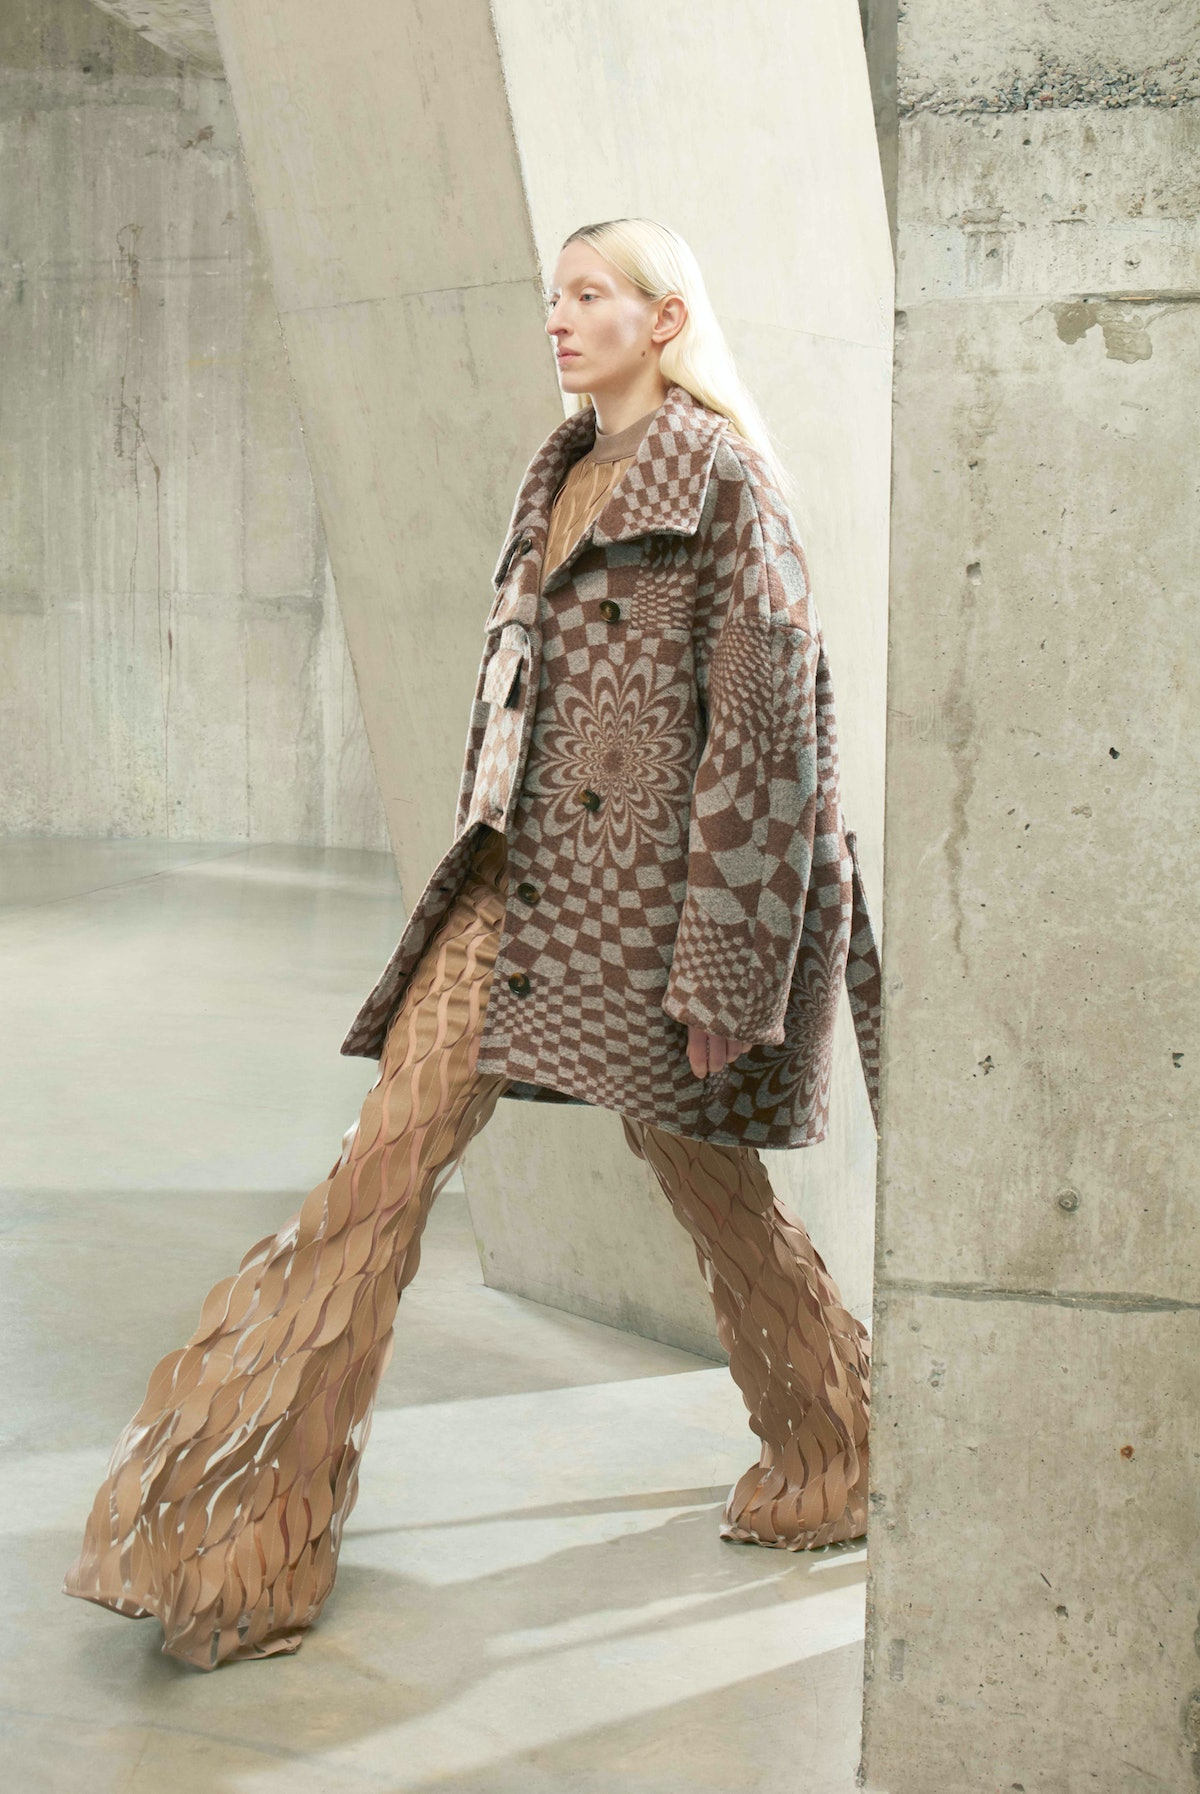 Model in tan checkered coat with flare pants